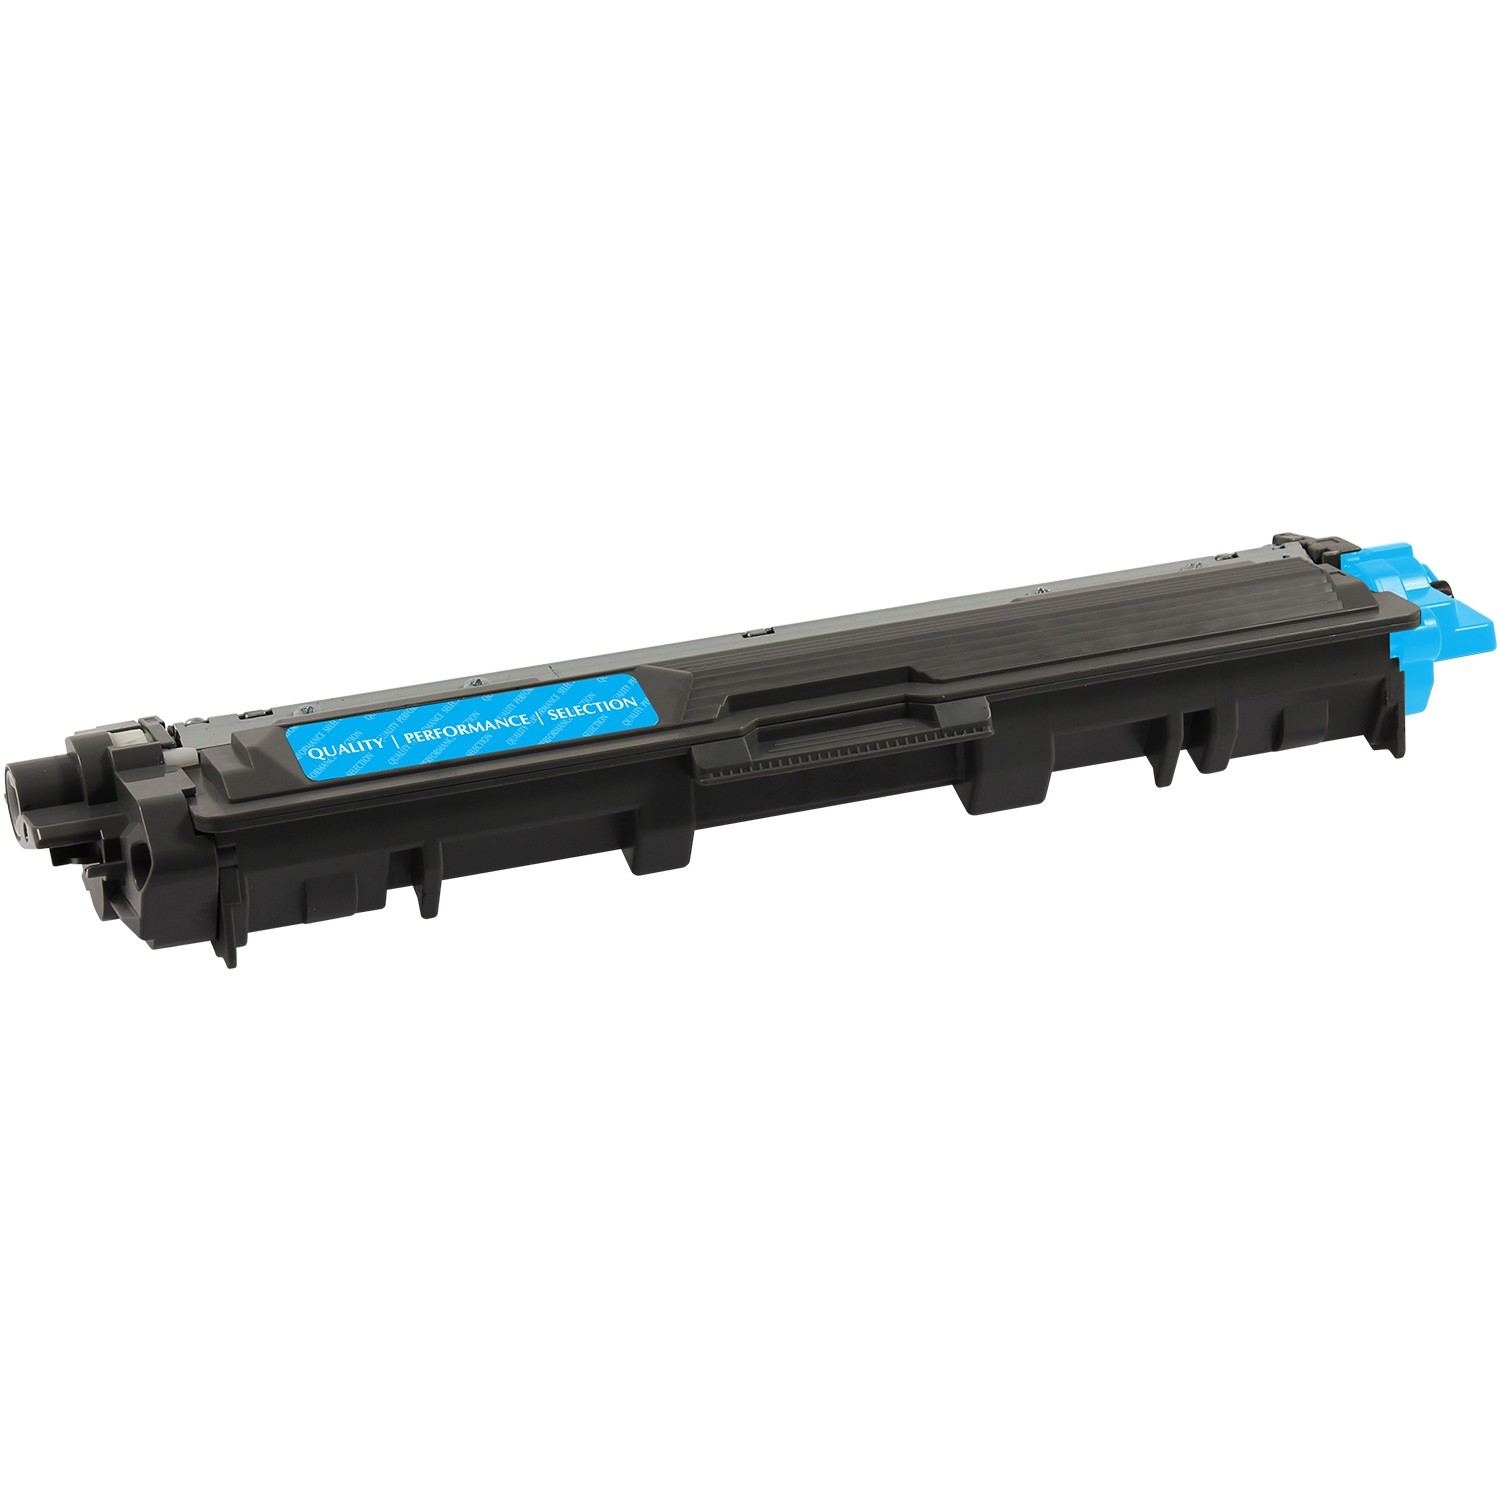 CYAN TONER 2200PG YIELD REPLACES BROTHER TN225C